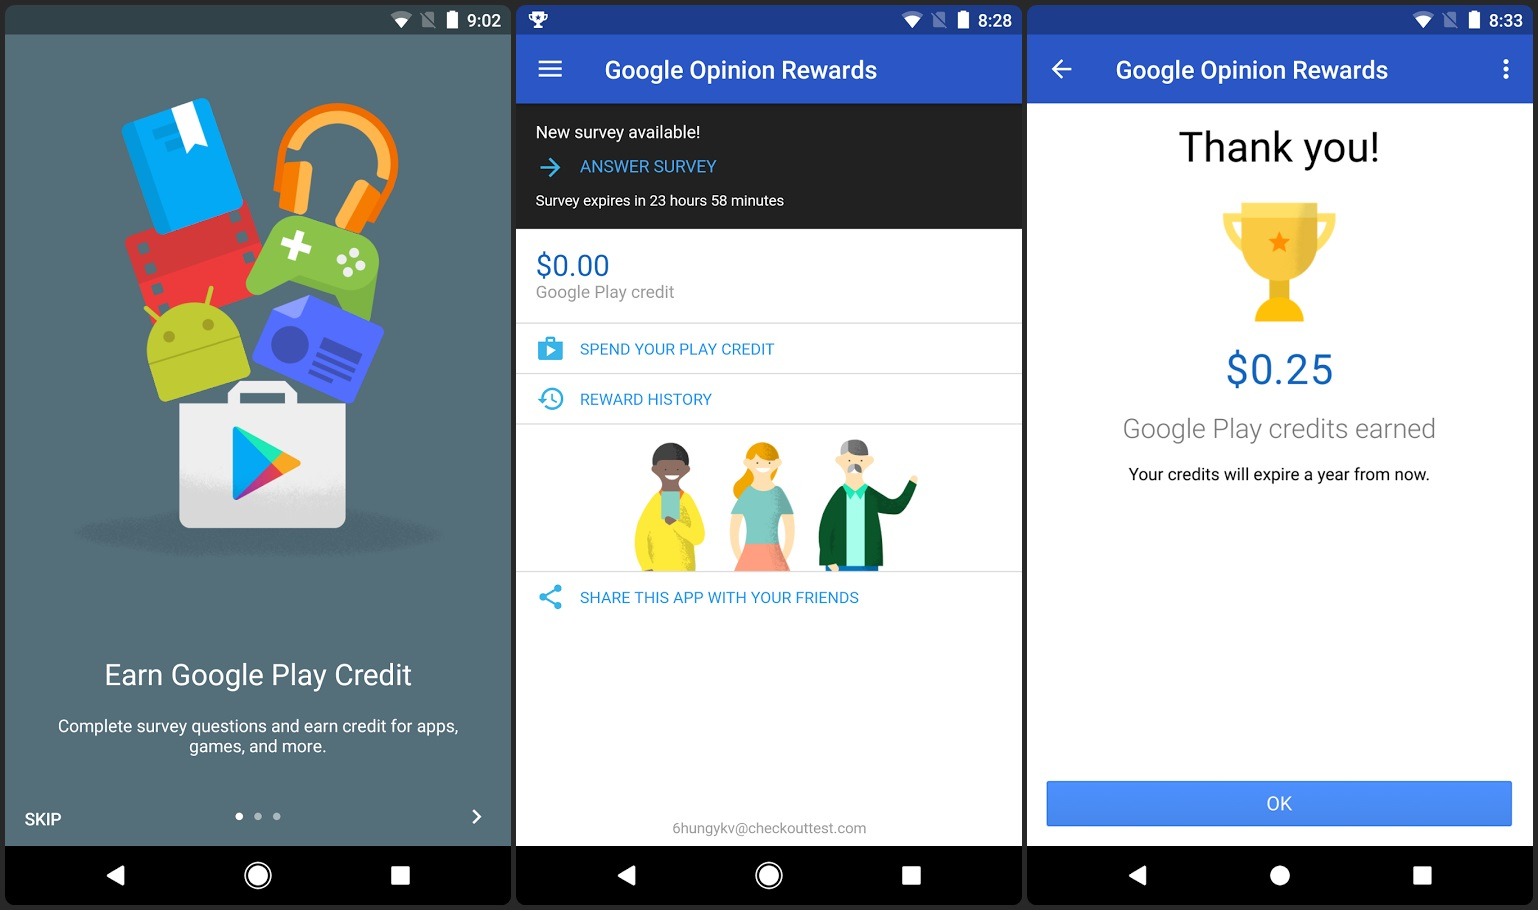 Free Google Play Store Credits from Google Opinion Rewards App